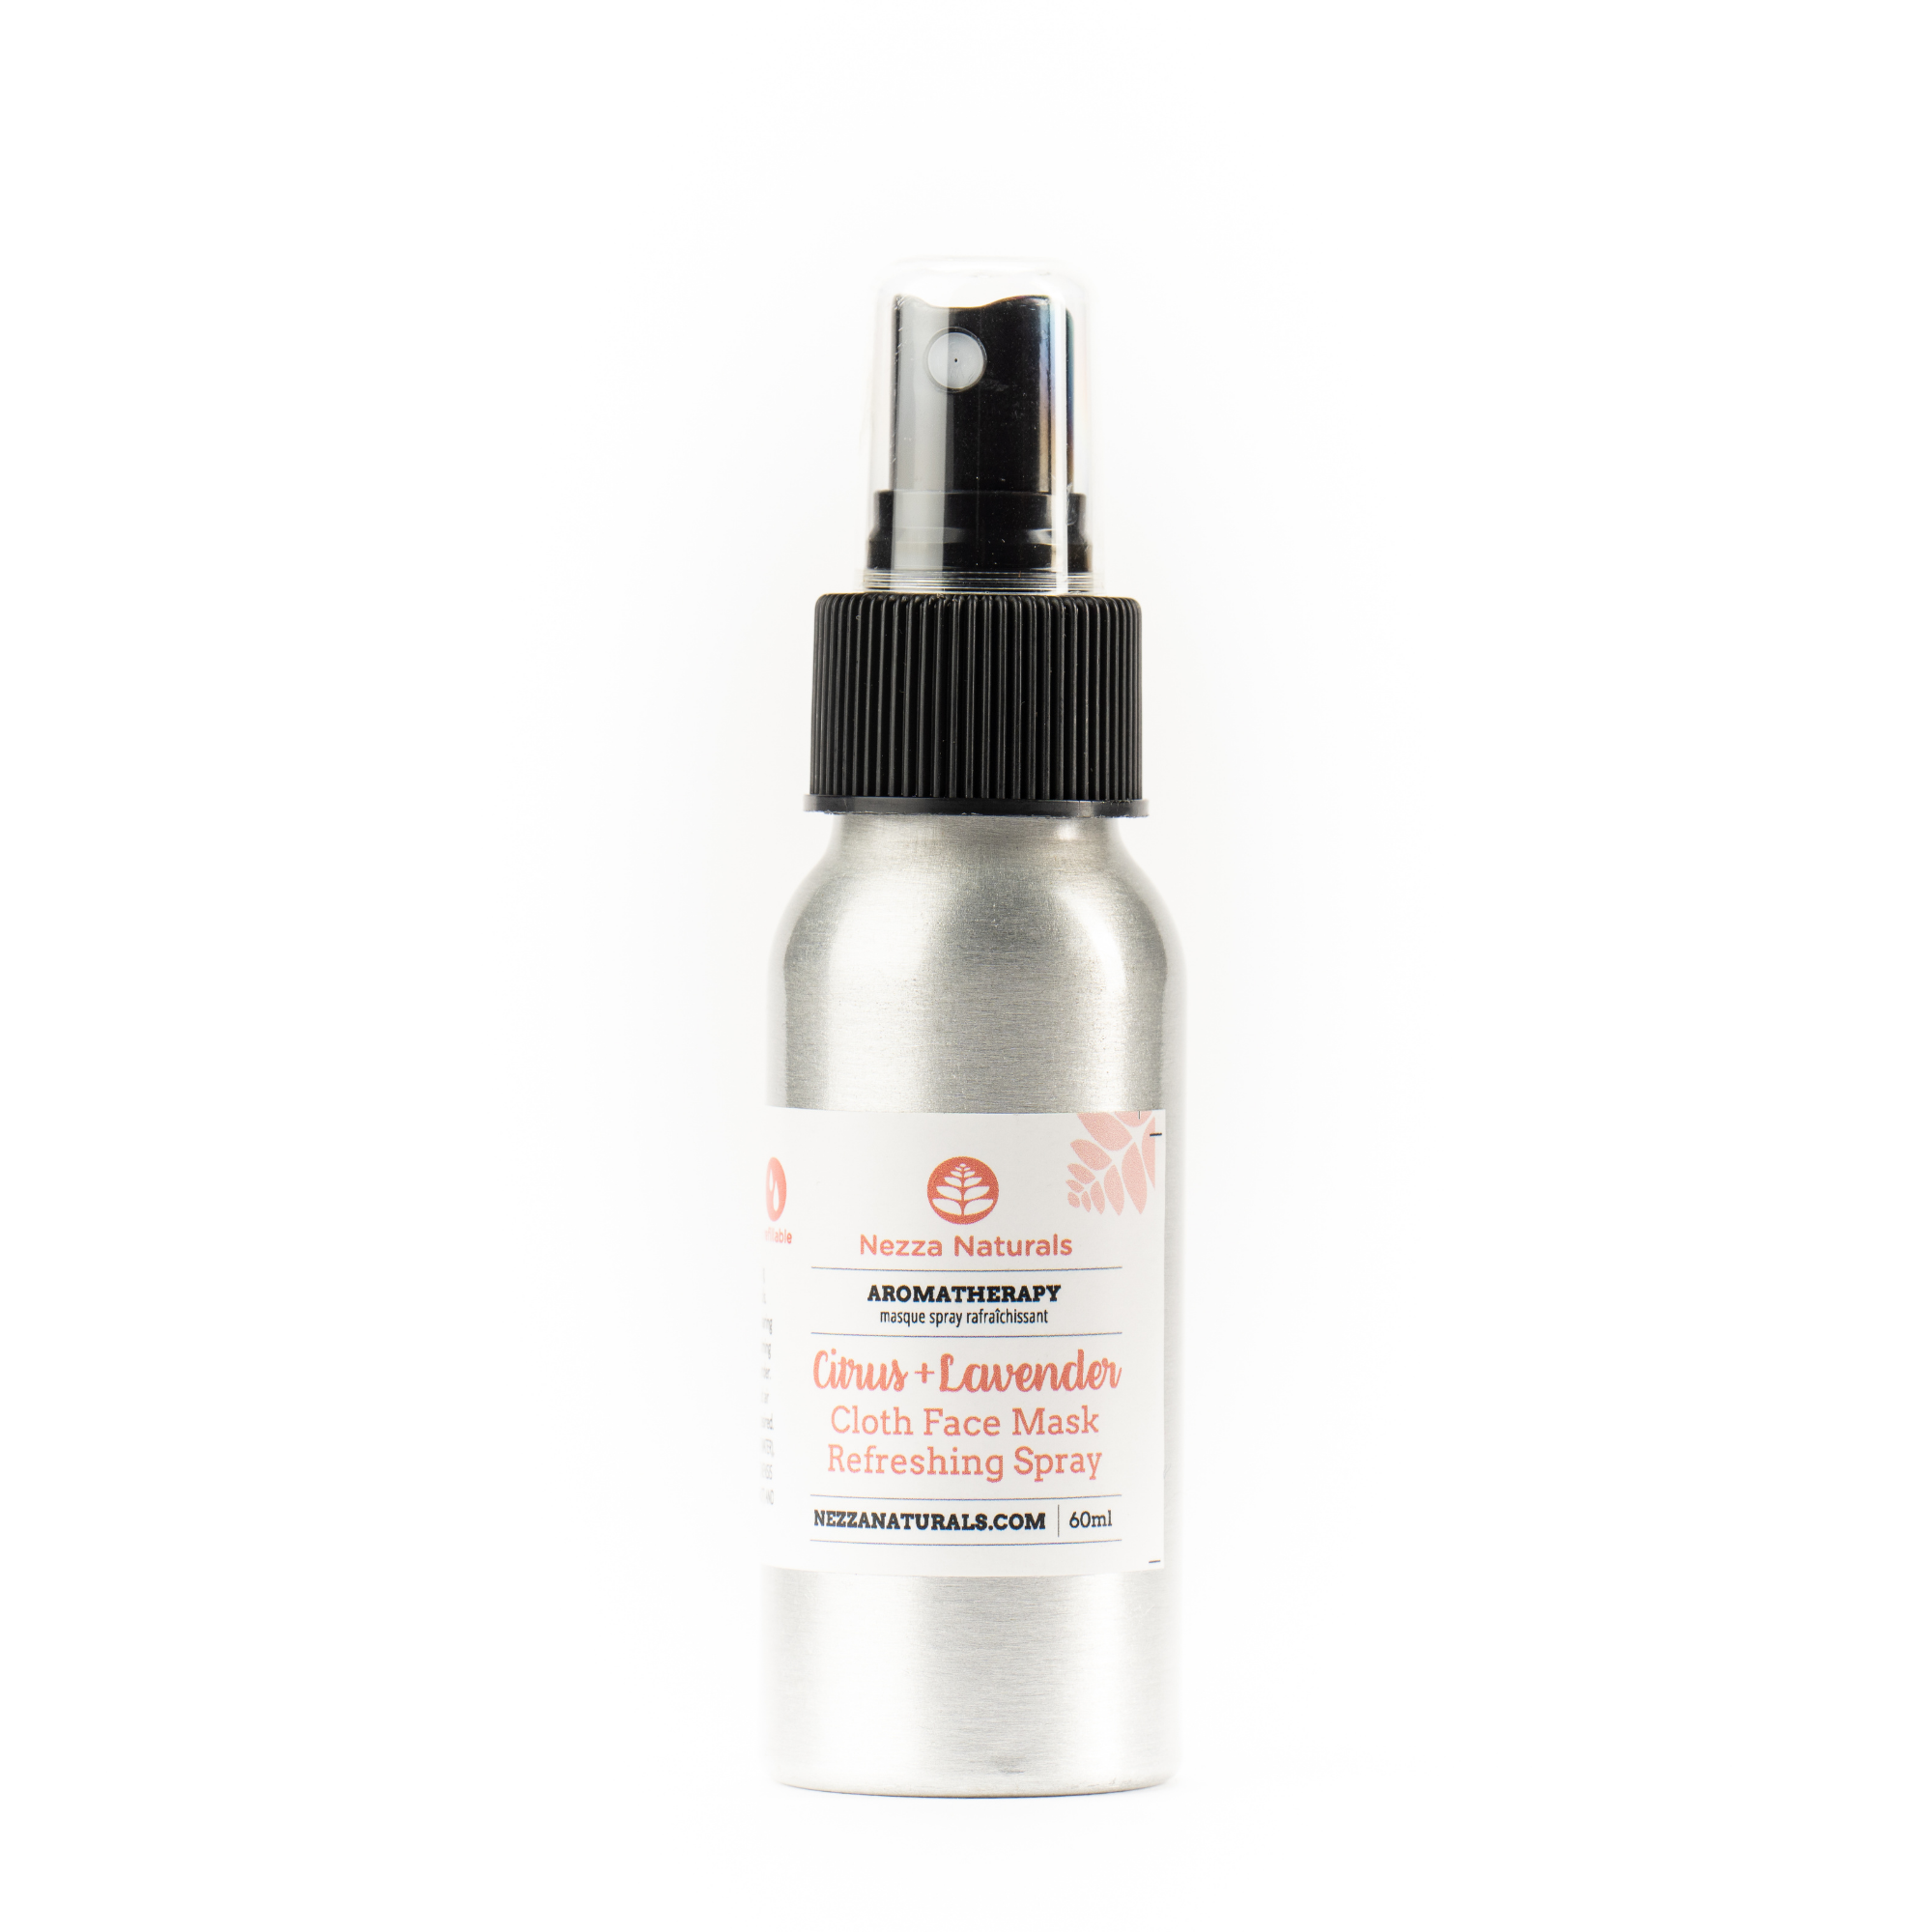 Cloth Mask Refreshing Spray